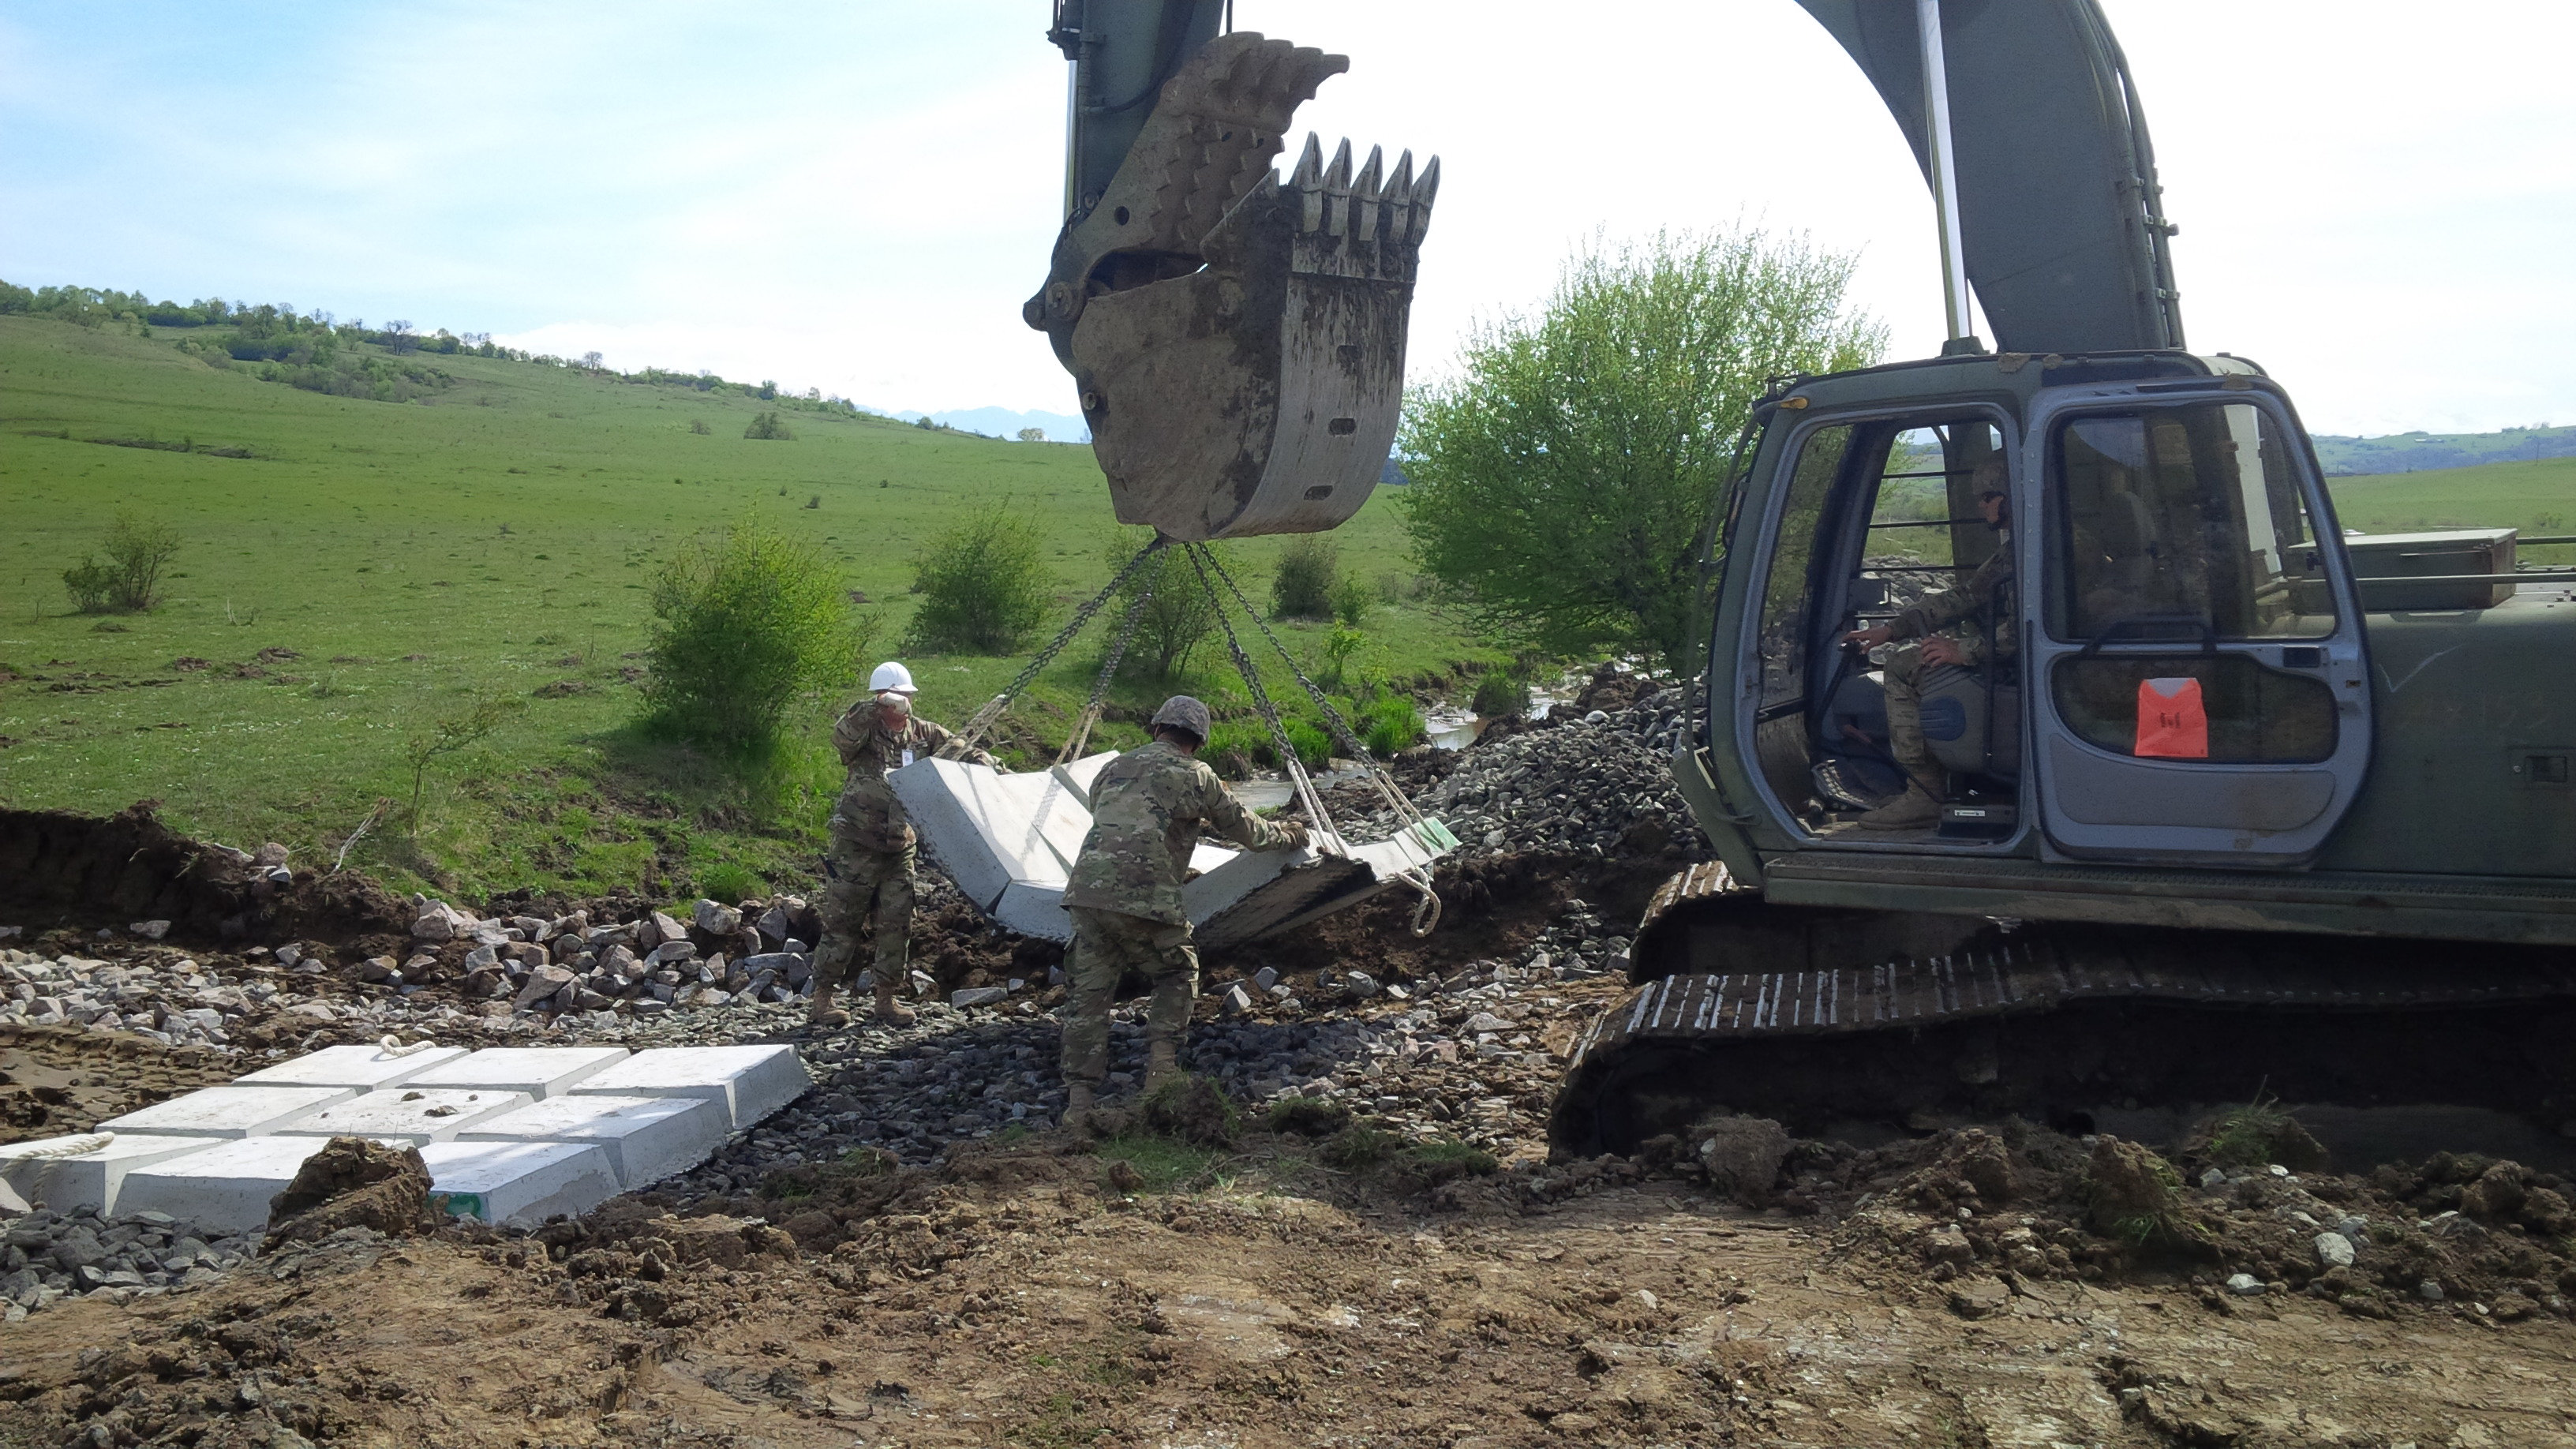 An excavator is used to place concrete mattresses on a low-water crossing being built for the Romanians so their field artillery can reach an area for setup. (Jen Judson/Staff)